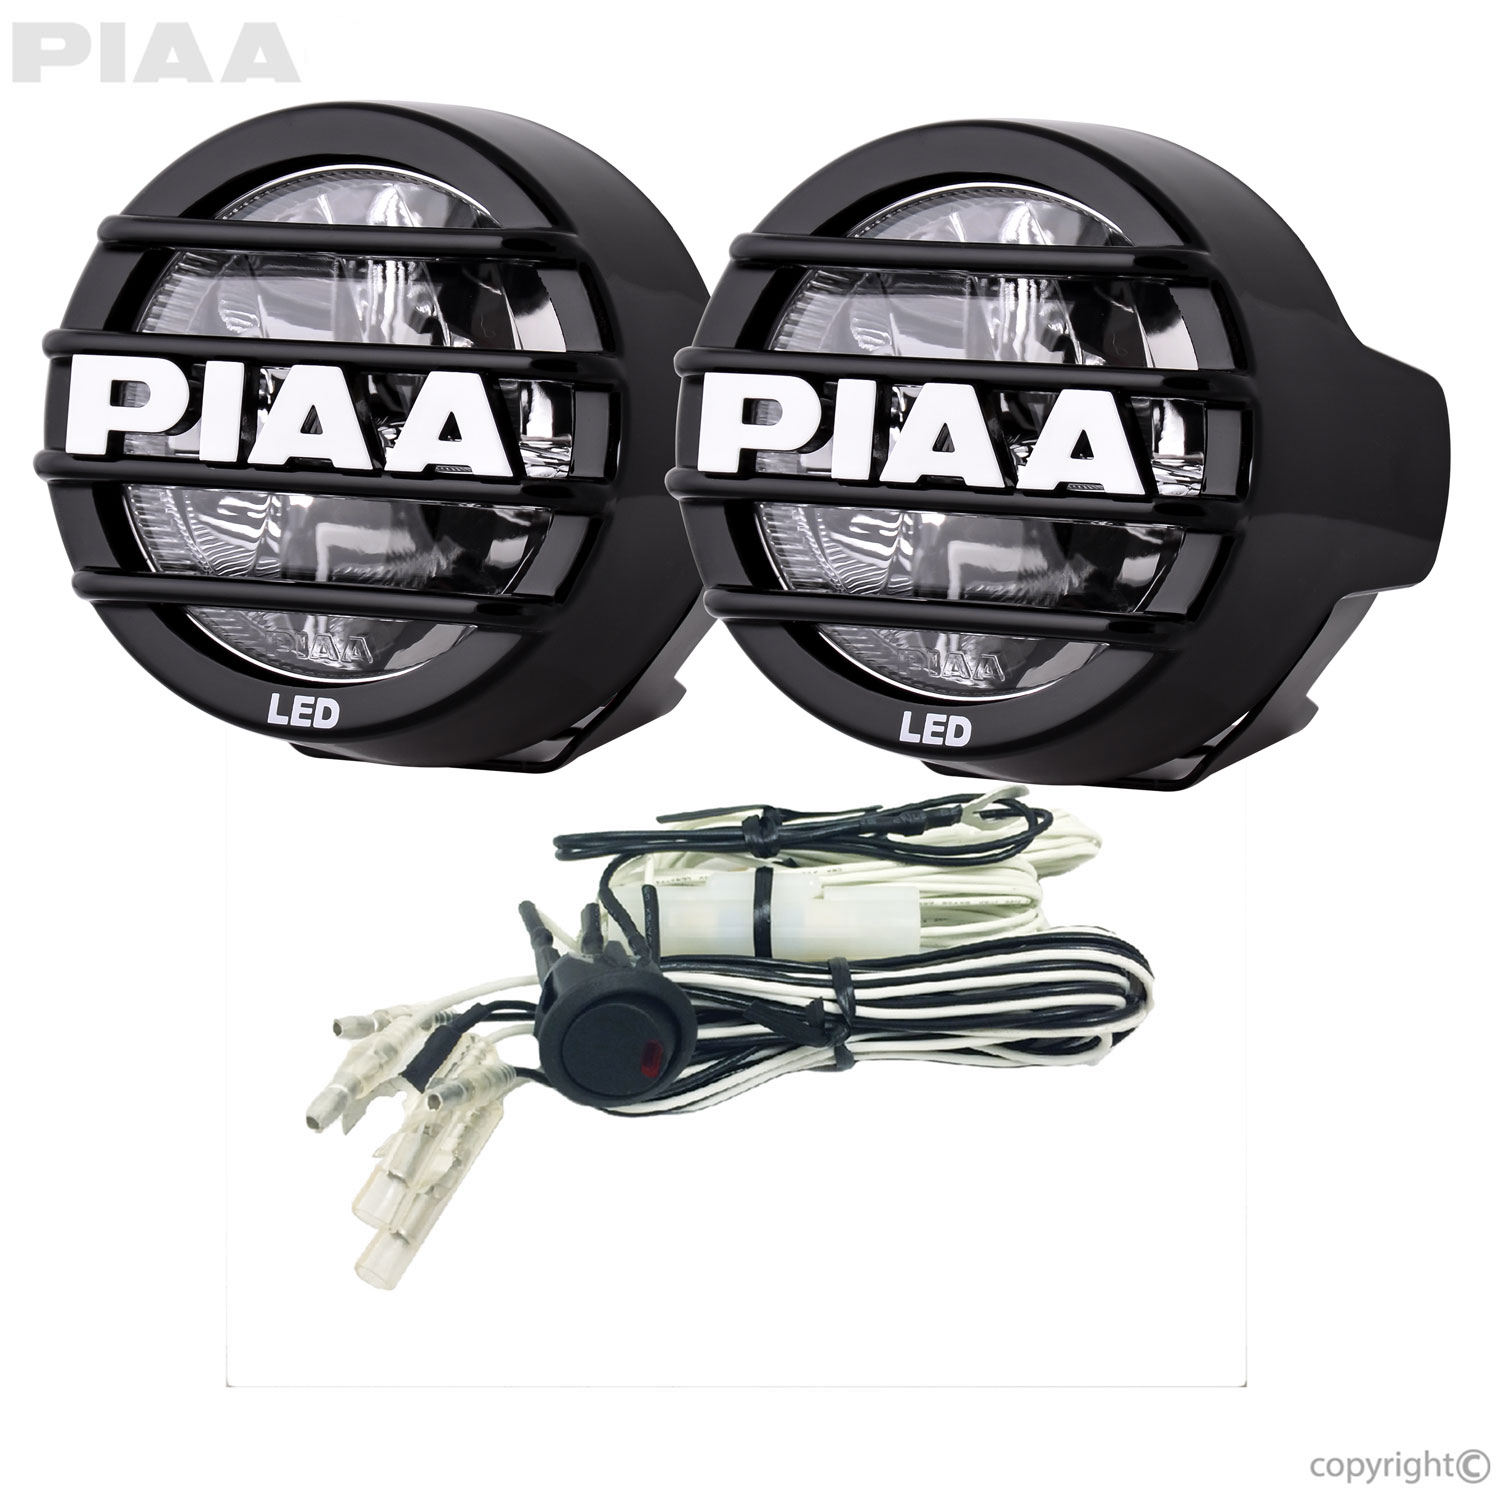 piaa 05372 530 led contents hr?bw=1000&w=1000&bh=1000&h=1000 piaa piaa lp530 led white driving beam kit 5372 High Intensity LED Driving Lights at crackthecode.co